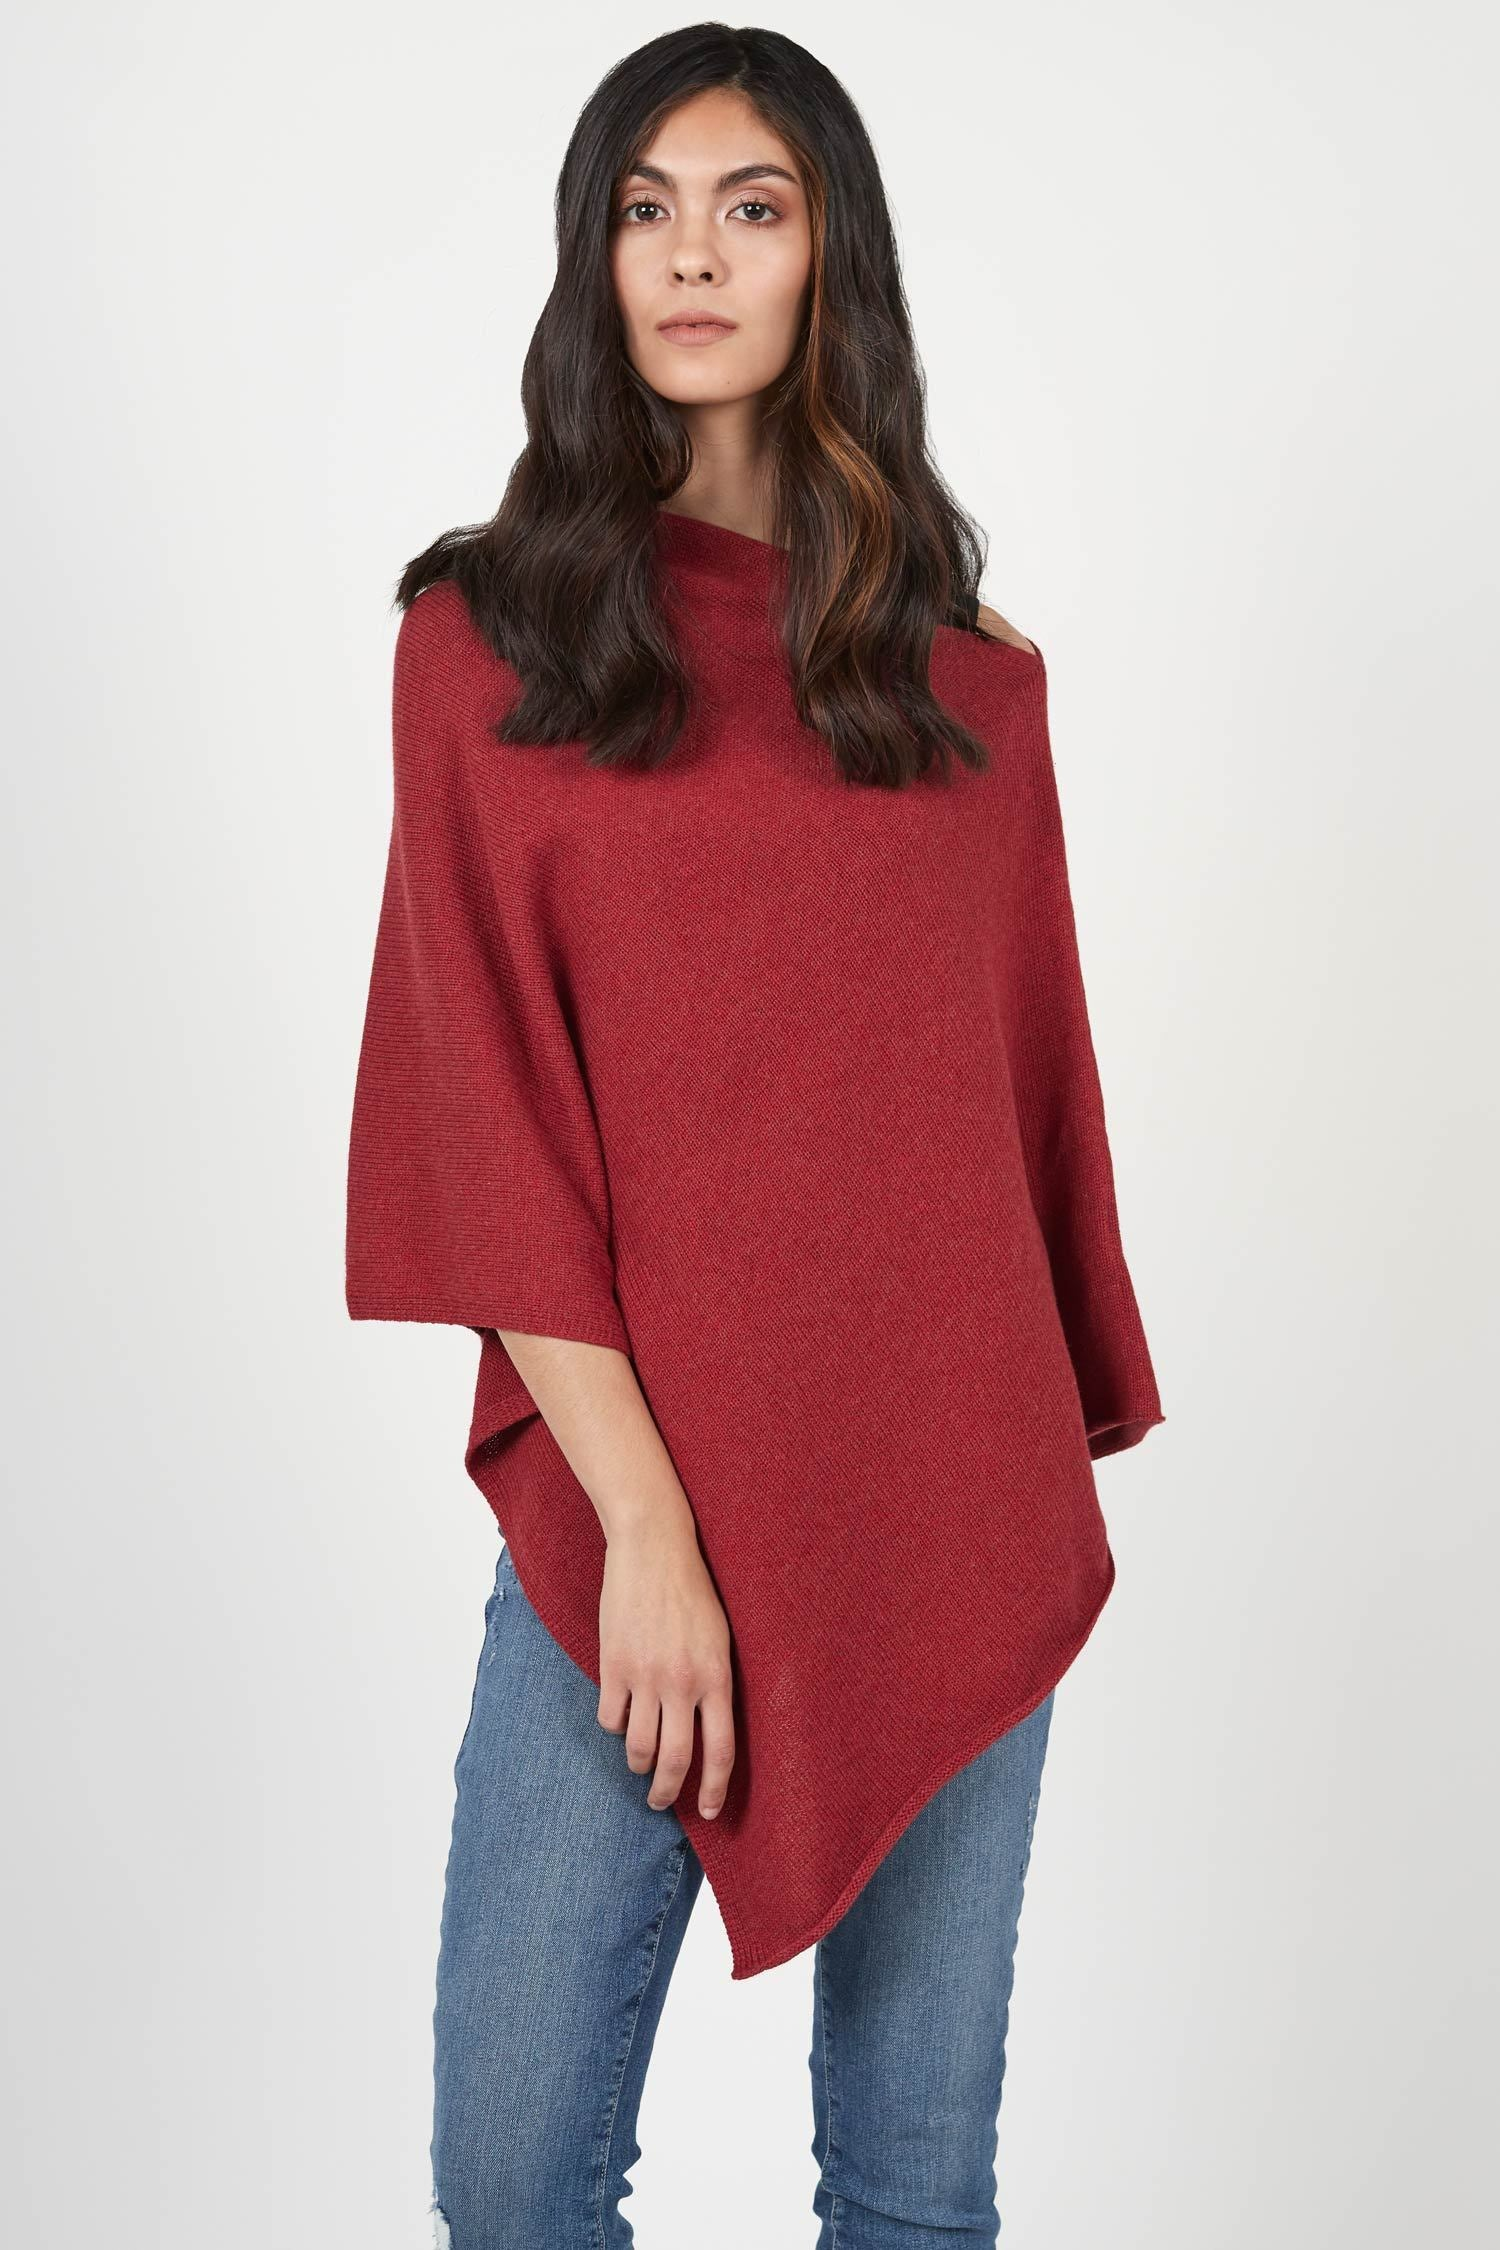 Womens Knit Poncho Ruby Red | Organic Cotton Clothing for Women